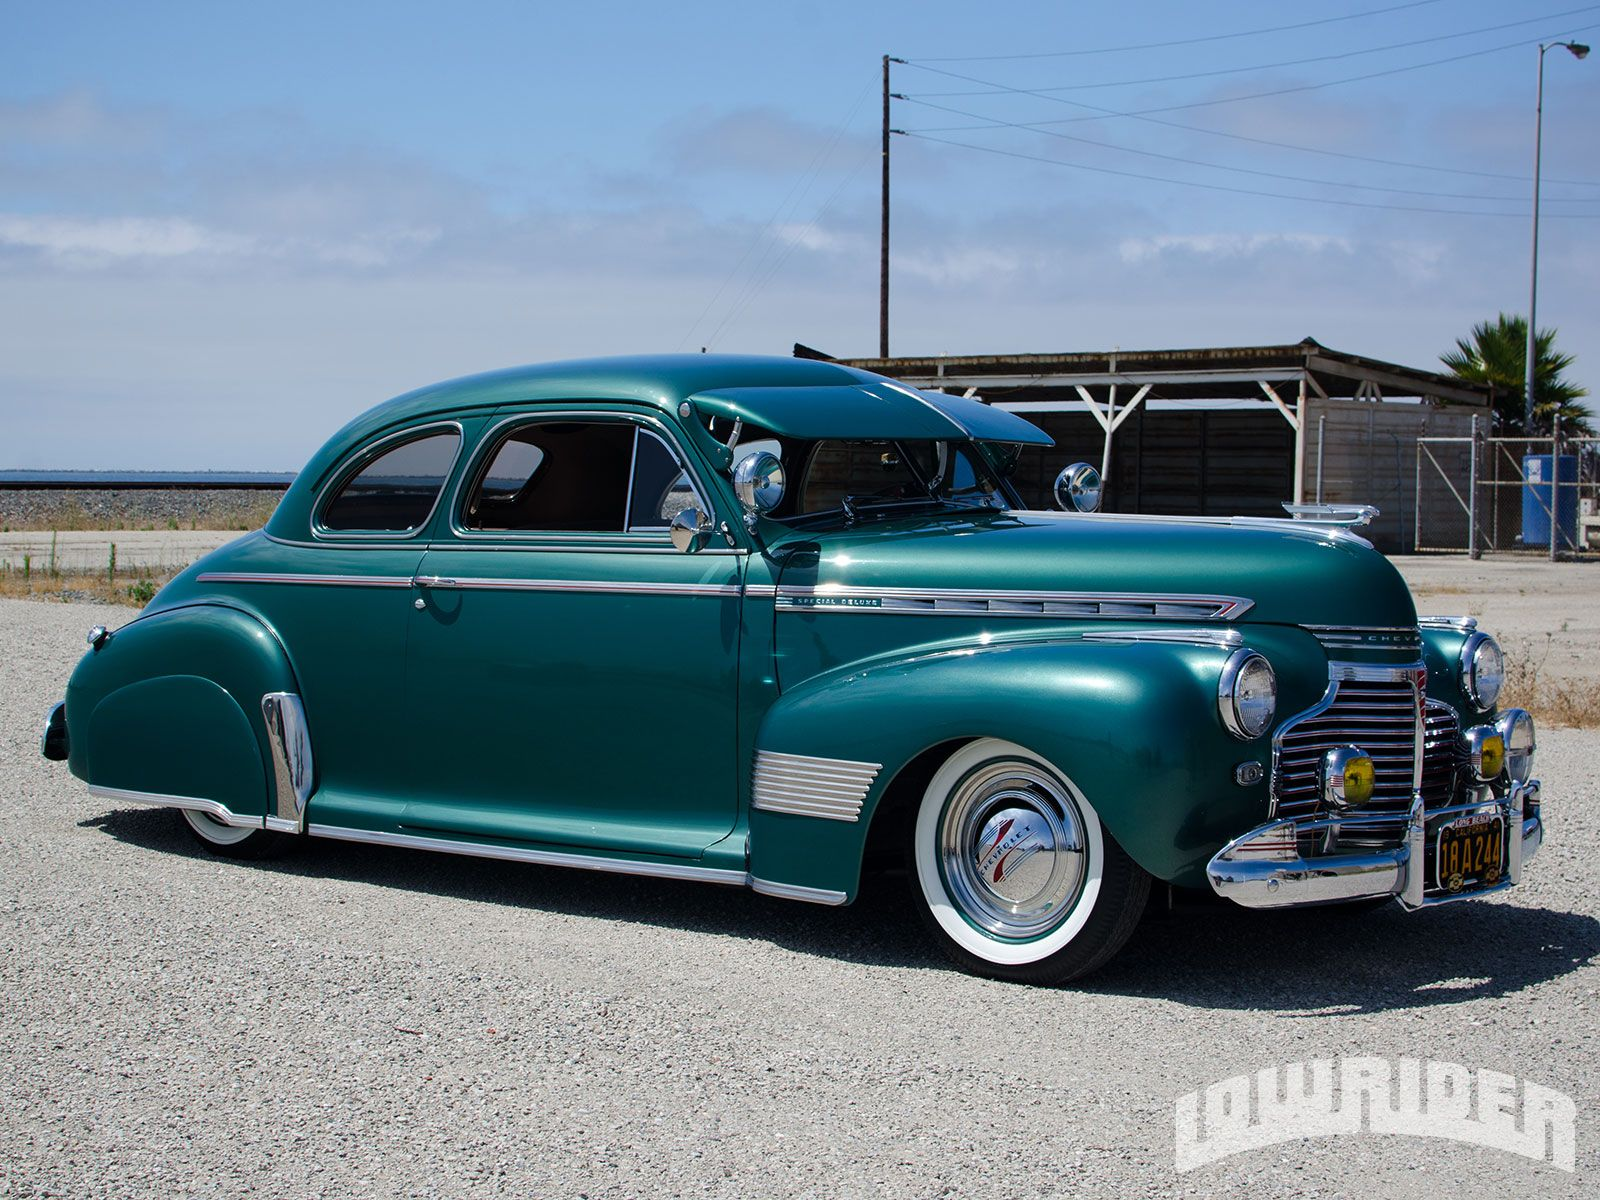 1941 Chevy Master Deluxe Coupe … | Custom Cars | Antiq…